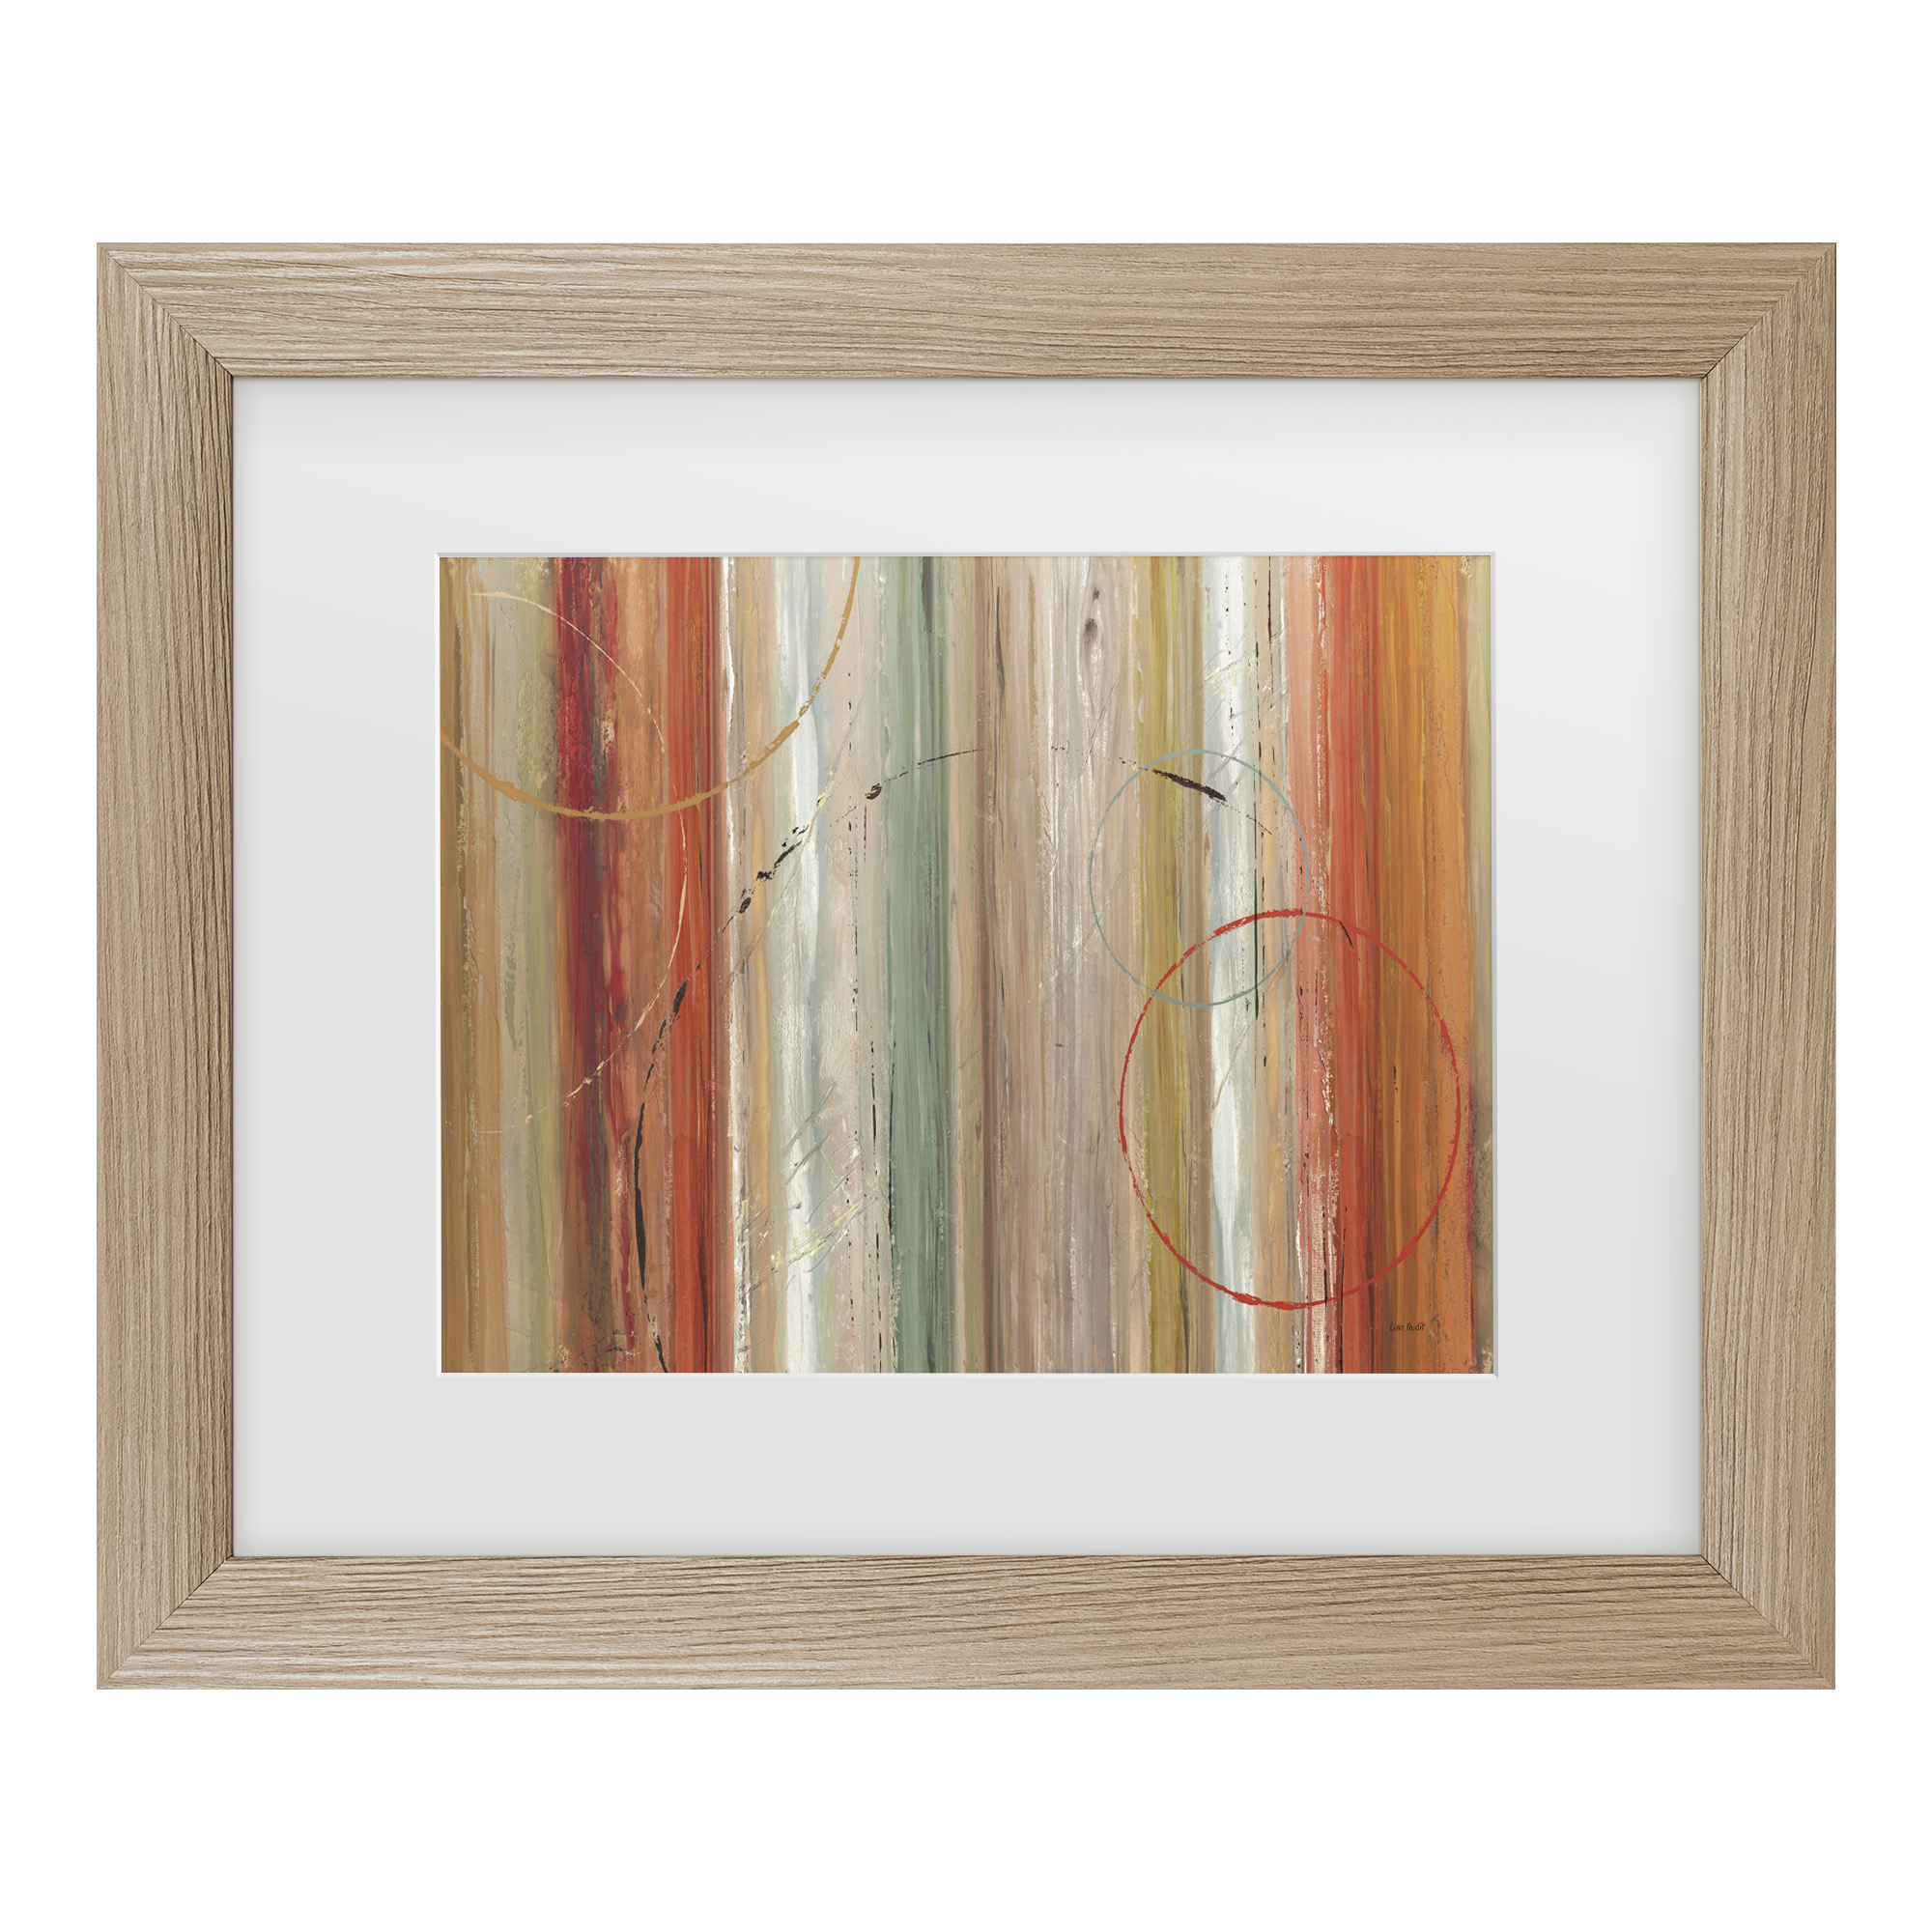 Trademark Fine Art 'Spiced II' Matted Framed Art by Lisa Audit